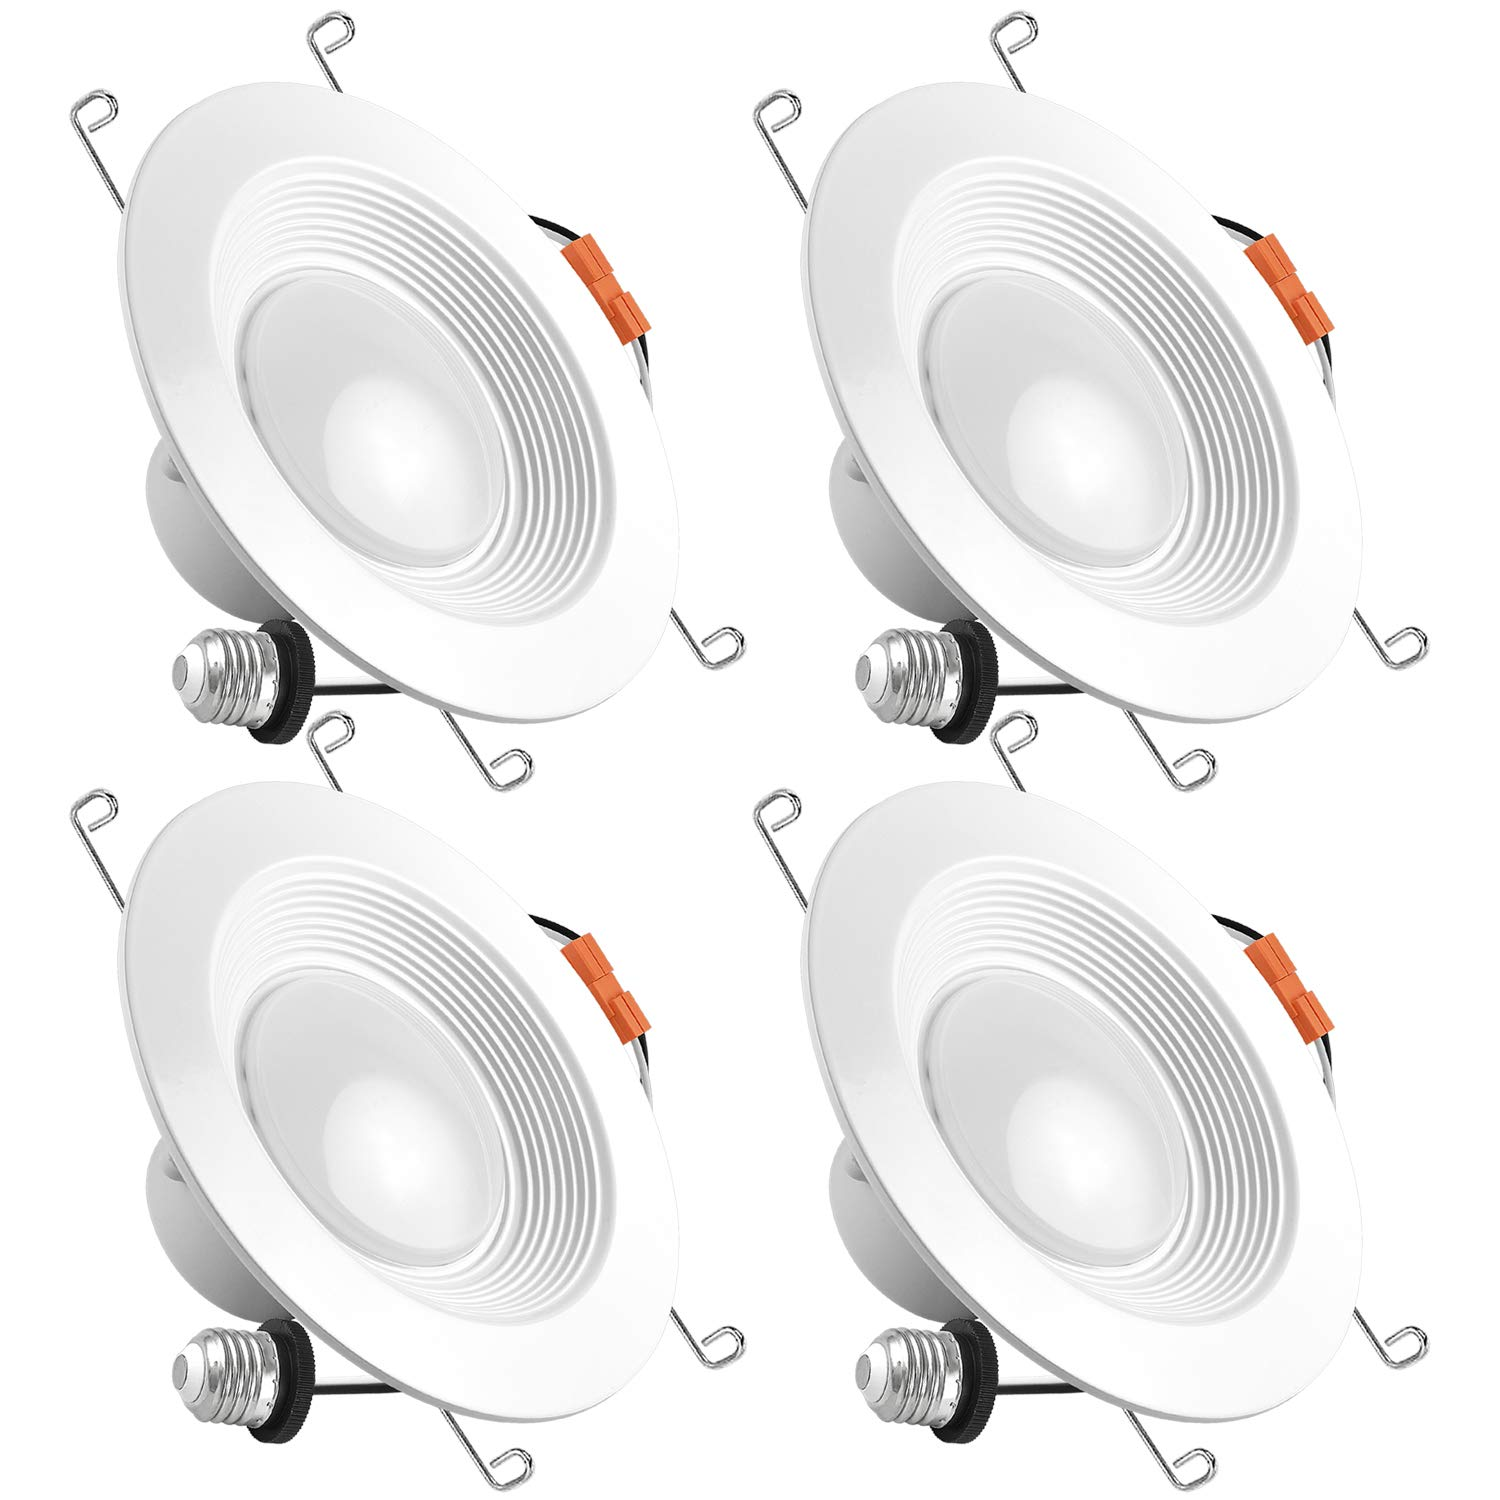 Luxrite 5/6 Inch LED Recessed Light, 15W (120W Equivalent), 3000K Soft White, 1100lm, Dimmable, Retrofit LED Can Light, Energy Star & UL, Damp Rated - Perfect for Kitchen, Bathroom, Office (4 Pack)